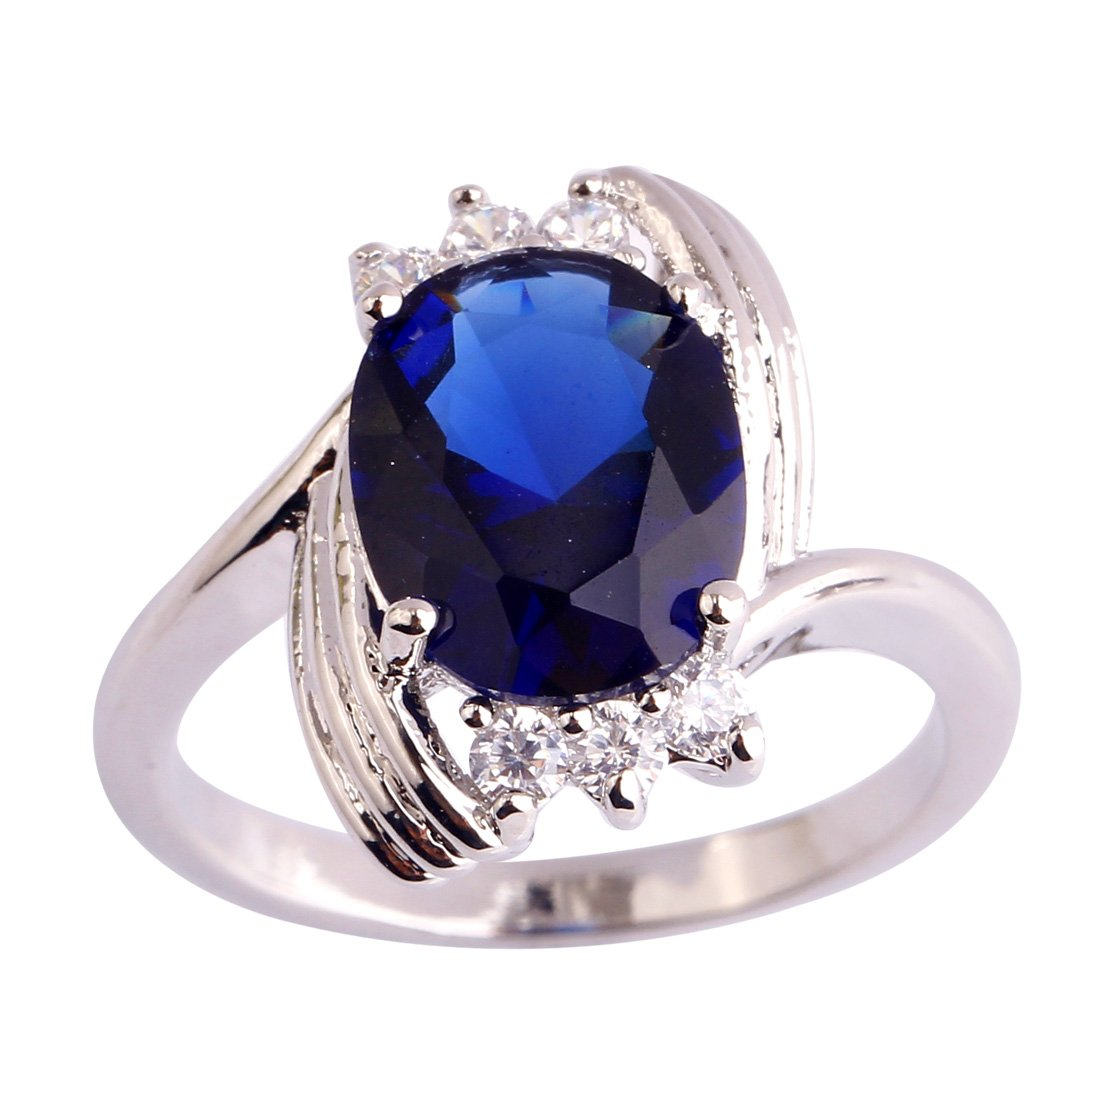 Psiroy Women's 925 Sterling Silver Created Blue Sapphire Filled Bypass Promise Ring Size 7